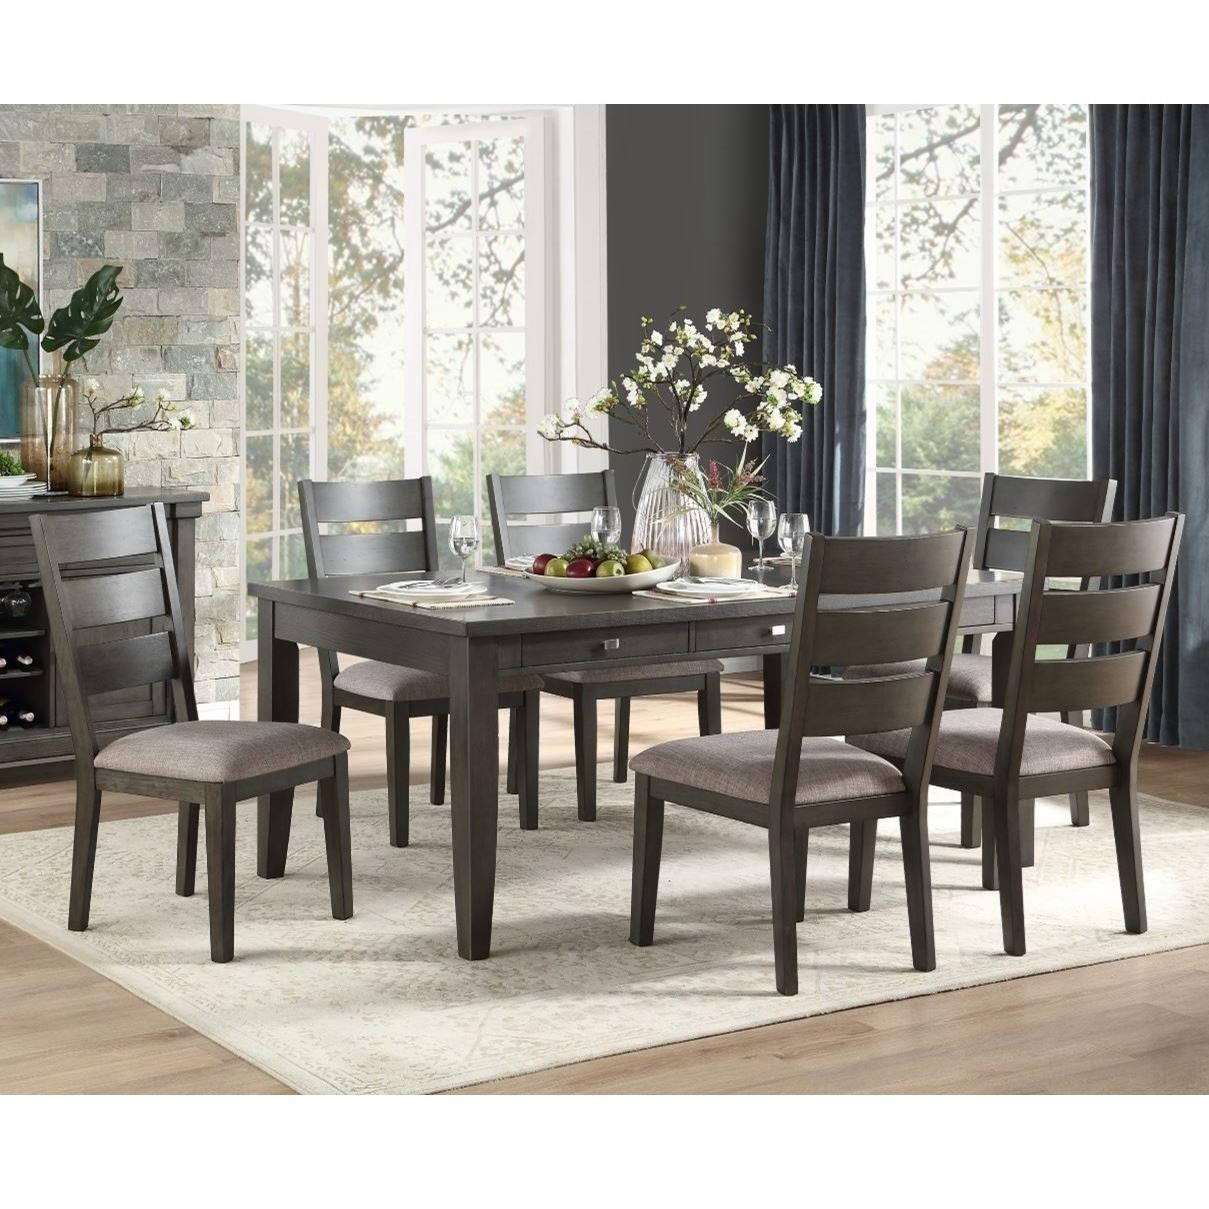 Baresford 7-Piece Table and Chair Set by Homelegance at Rife's Home Furniture